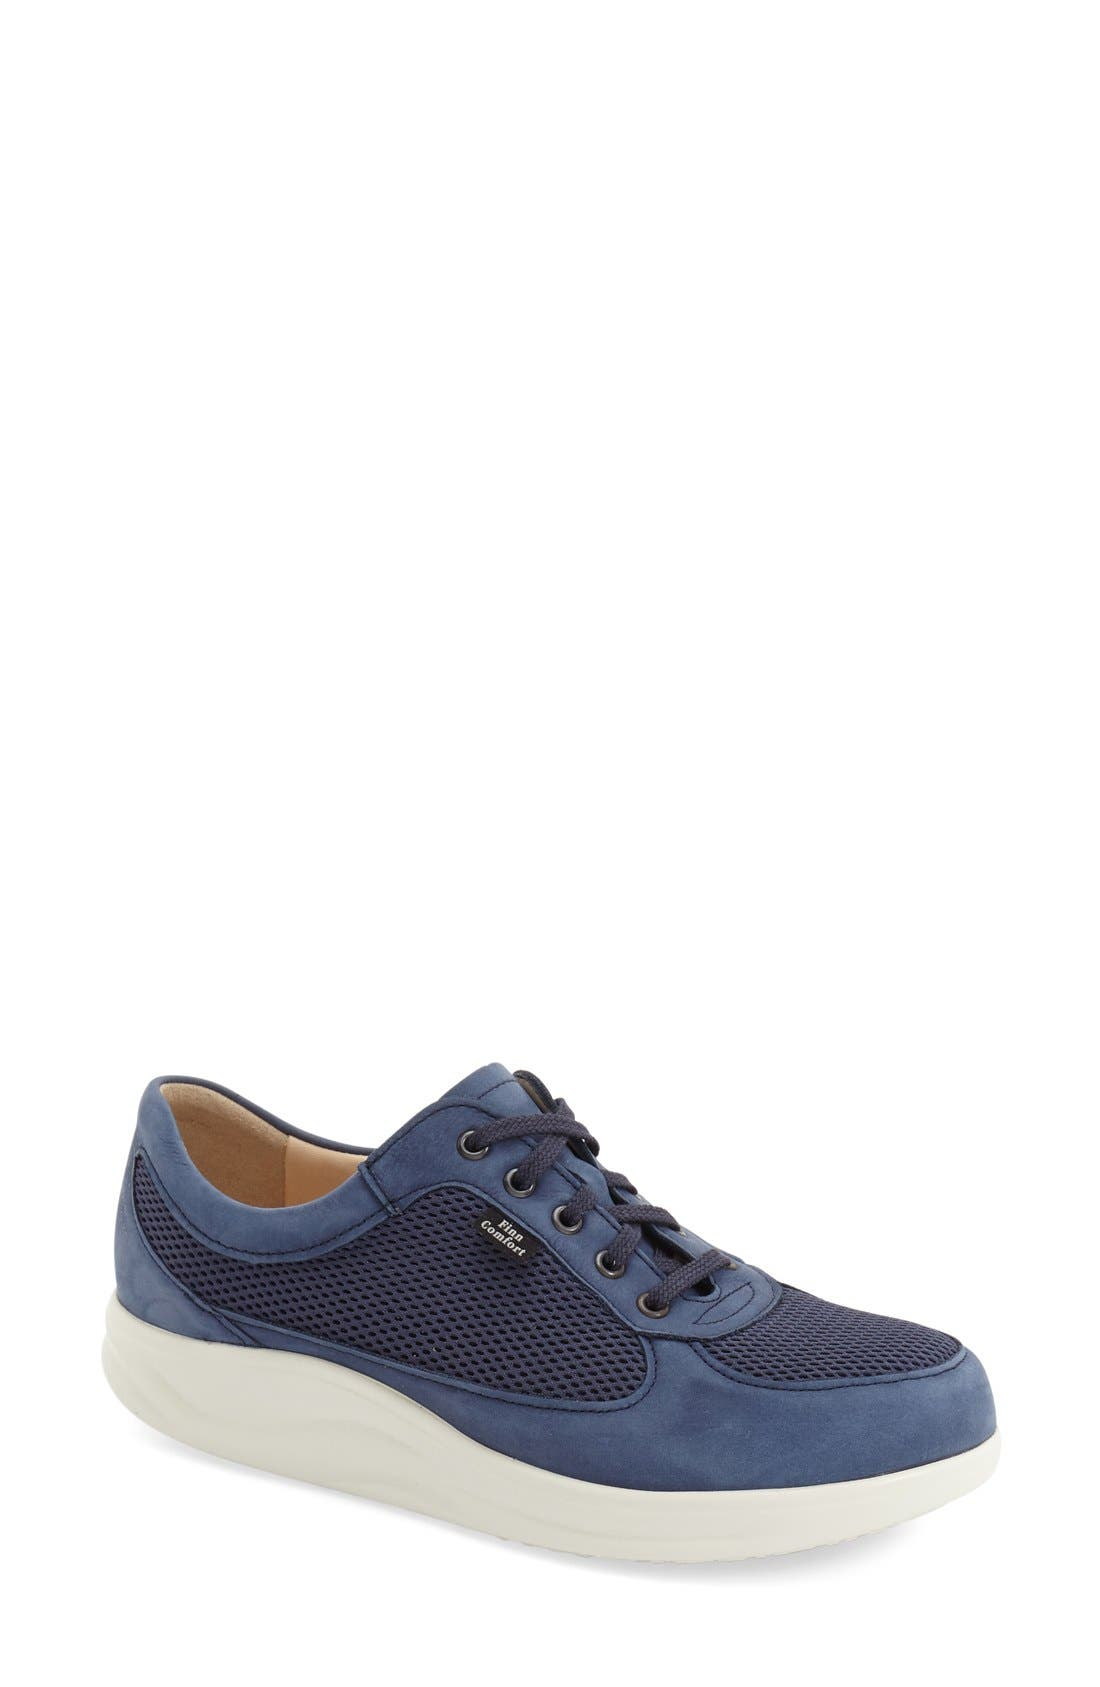 'Columbia' Sneaker,                             Main thumbnail 1, color,                             DENIM NUBUCK LEATHER